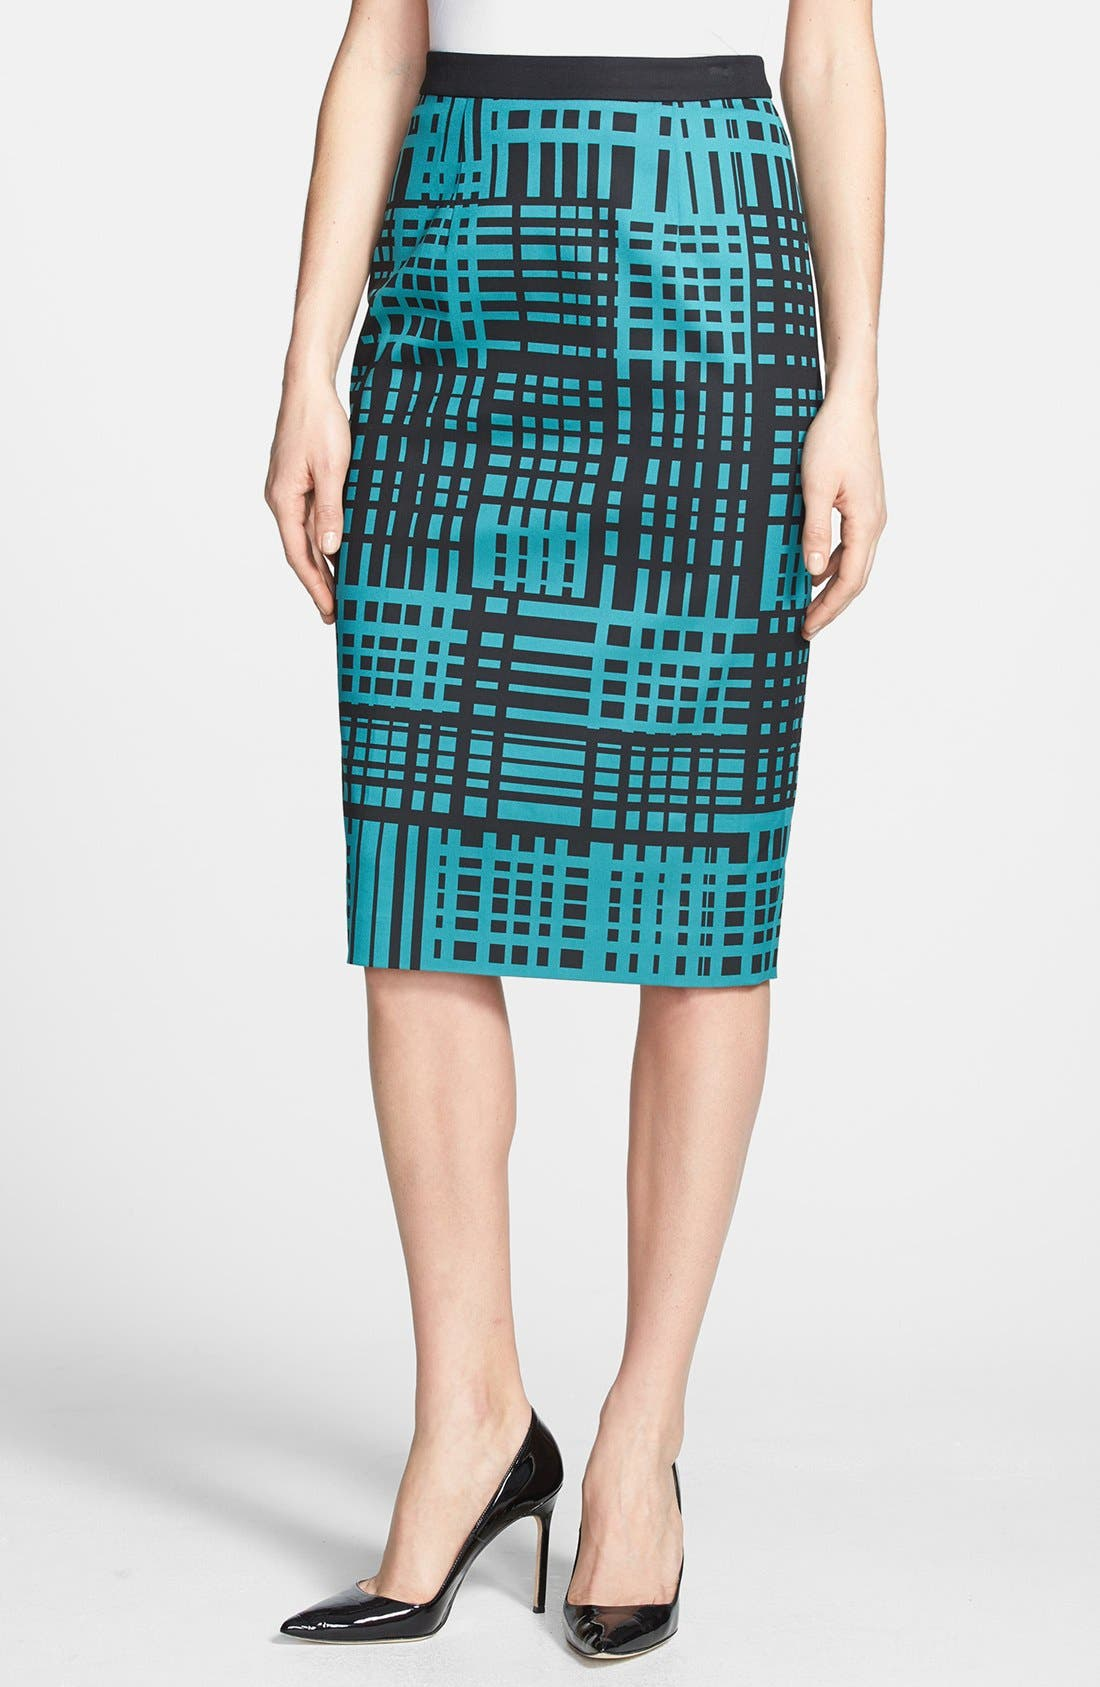 Print Pencil Skirt,                         Main,                         color, Black/ Teal Bayou Combo